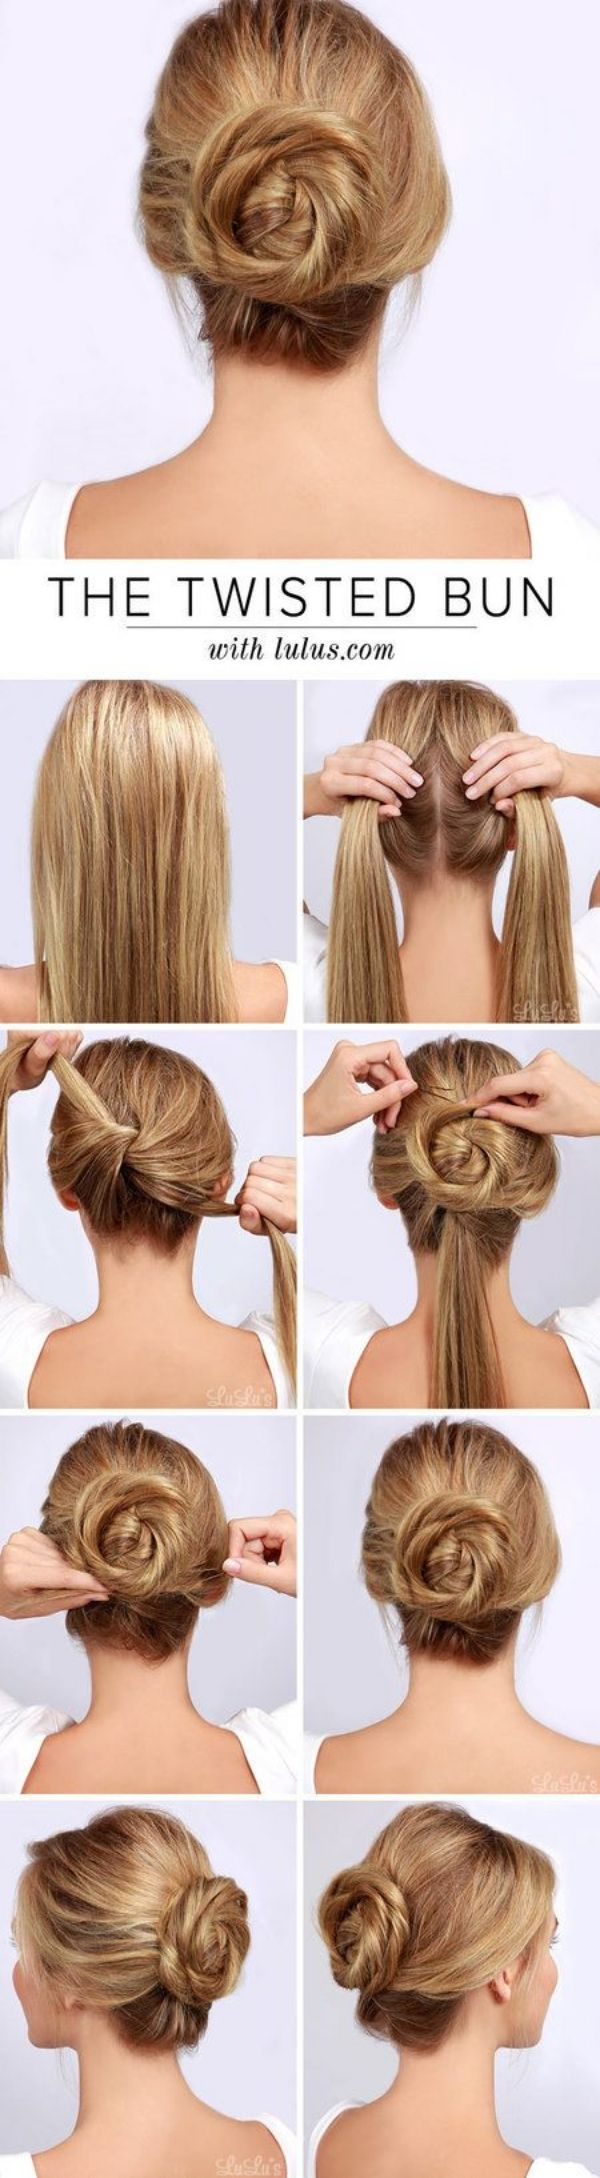 THE EASY BUN | EASY HAIRSTYLES | STEP BY STEP HAIRSTYLES | HAIRSTYLE TUTORIALS | 7 Hairstyles That Can be Done in 3 Minutes